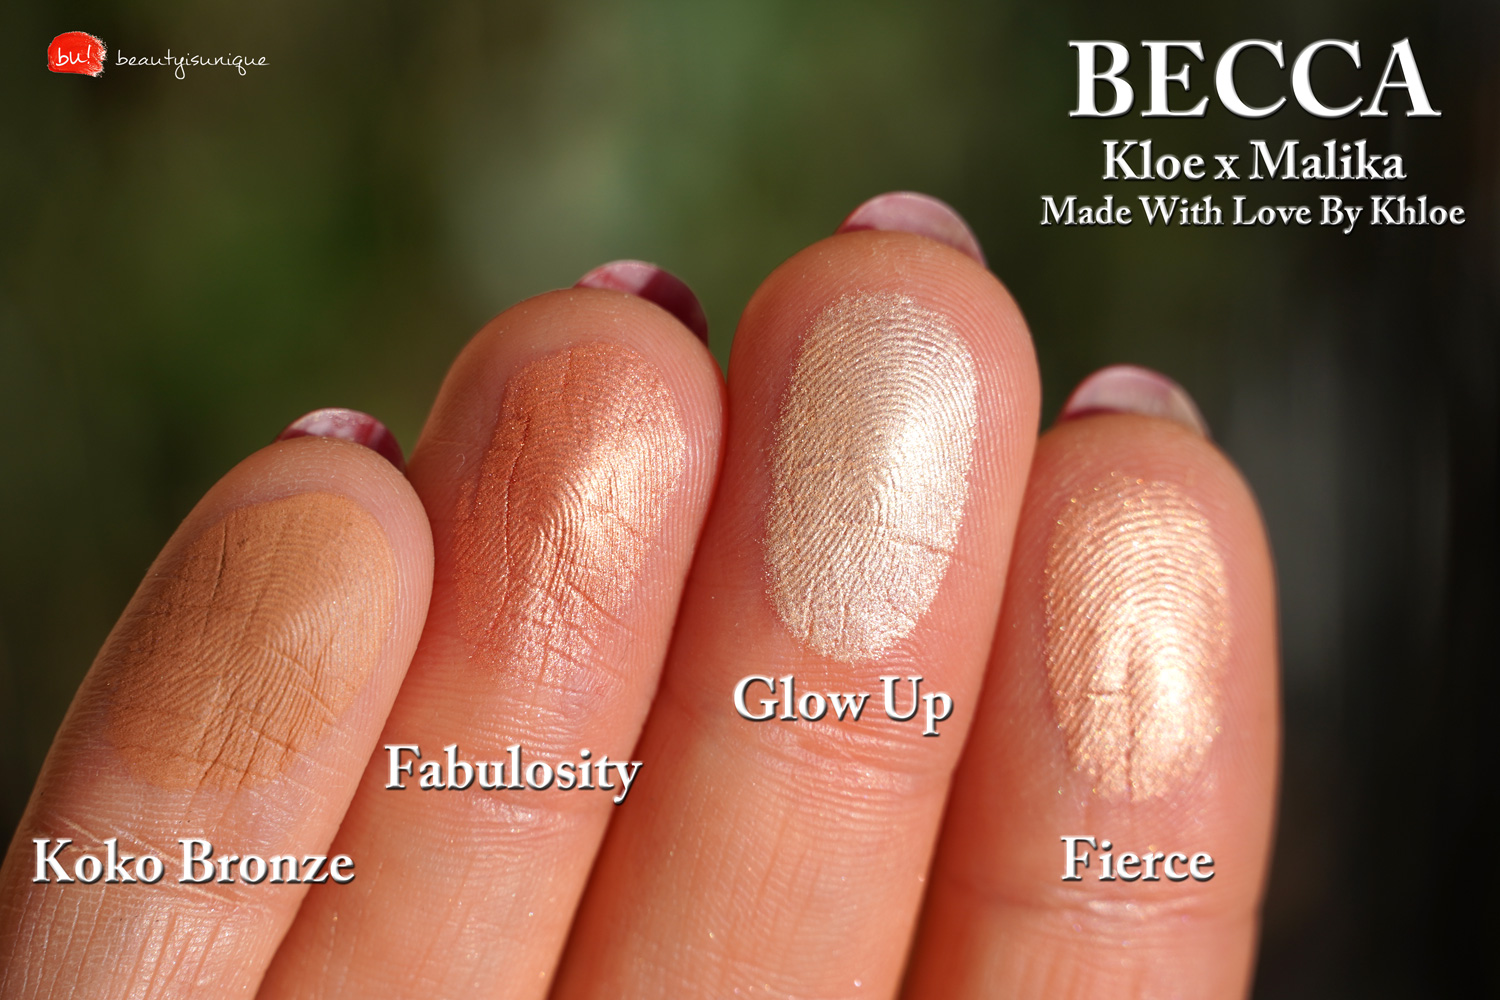 becca-khloe-malika-made-with-love-by-khloe-swatches